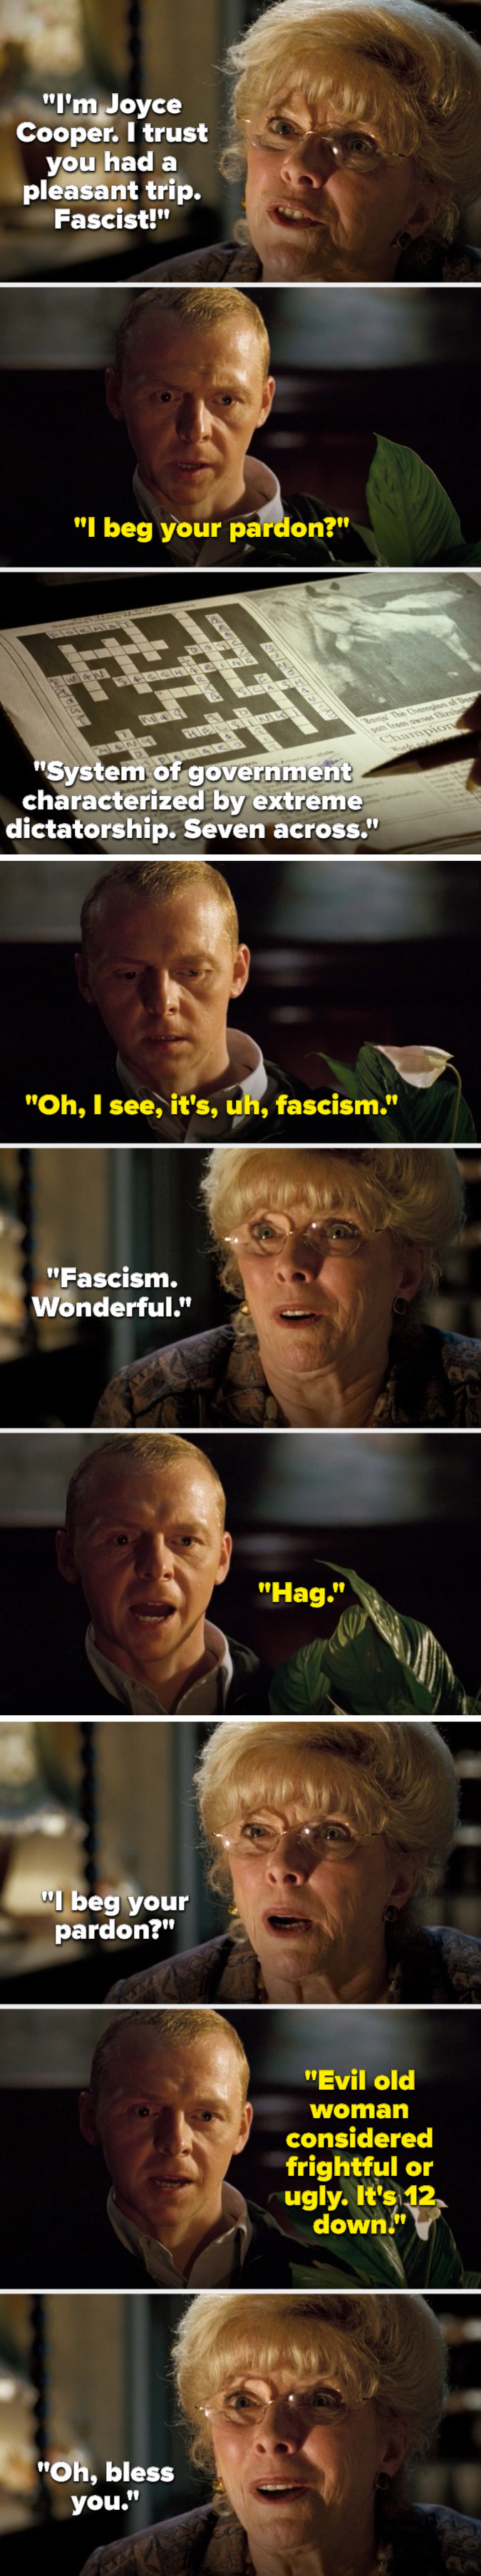 """Joyce Cooper says, """"Fascist,"""" Angel says, """"I beg your pardon,"""" Cooper says, """"System of government characterized by extreme dictatorship, 7 across,"""" Angel says, """"Oh, fascism,"""" then he says, """"Hag, evil old woman considered frightful or ugly, 12 down"""""""